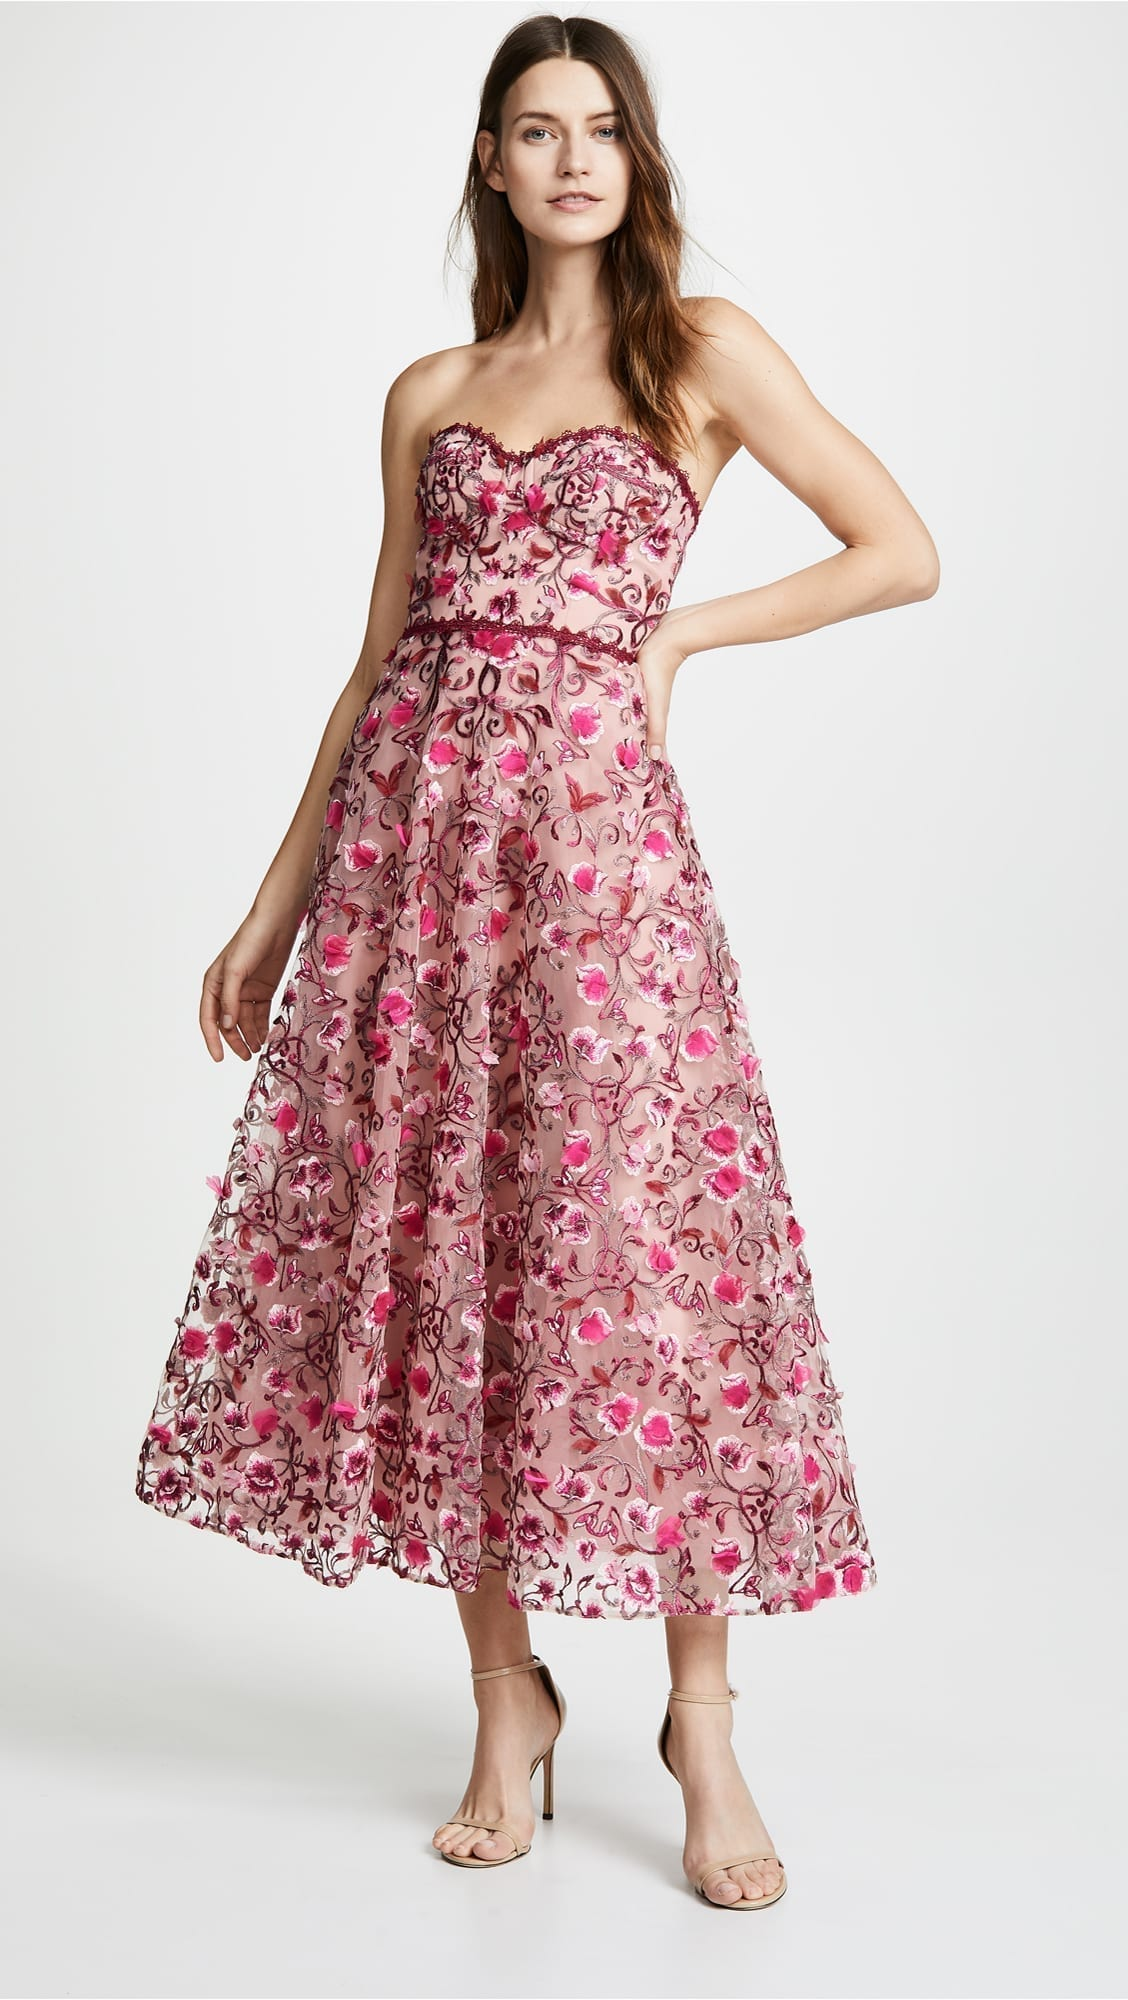 ed3247c8ff1f6 MARCHESA NOTTE Floral Embroidered Tea Length Floral Gown